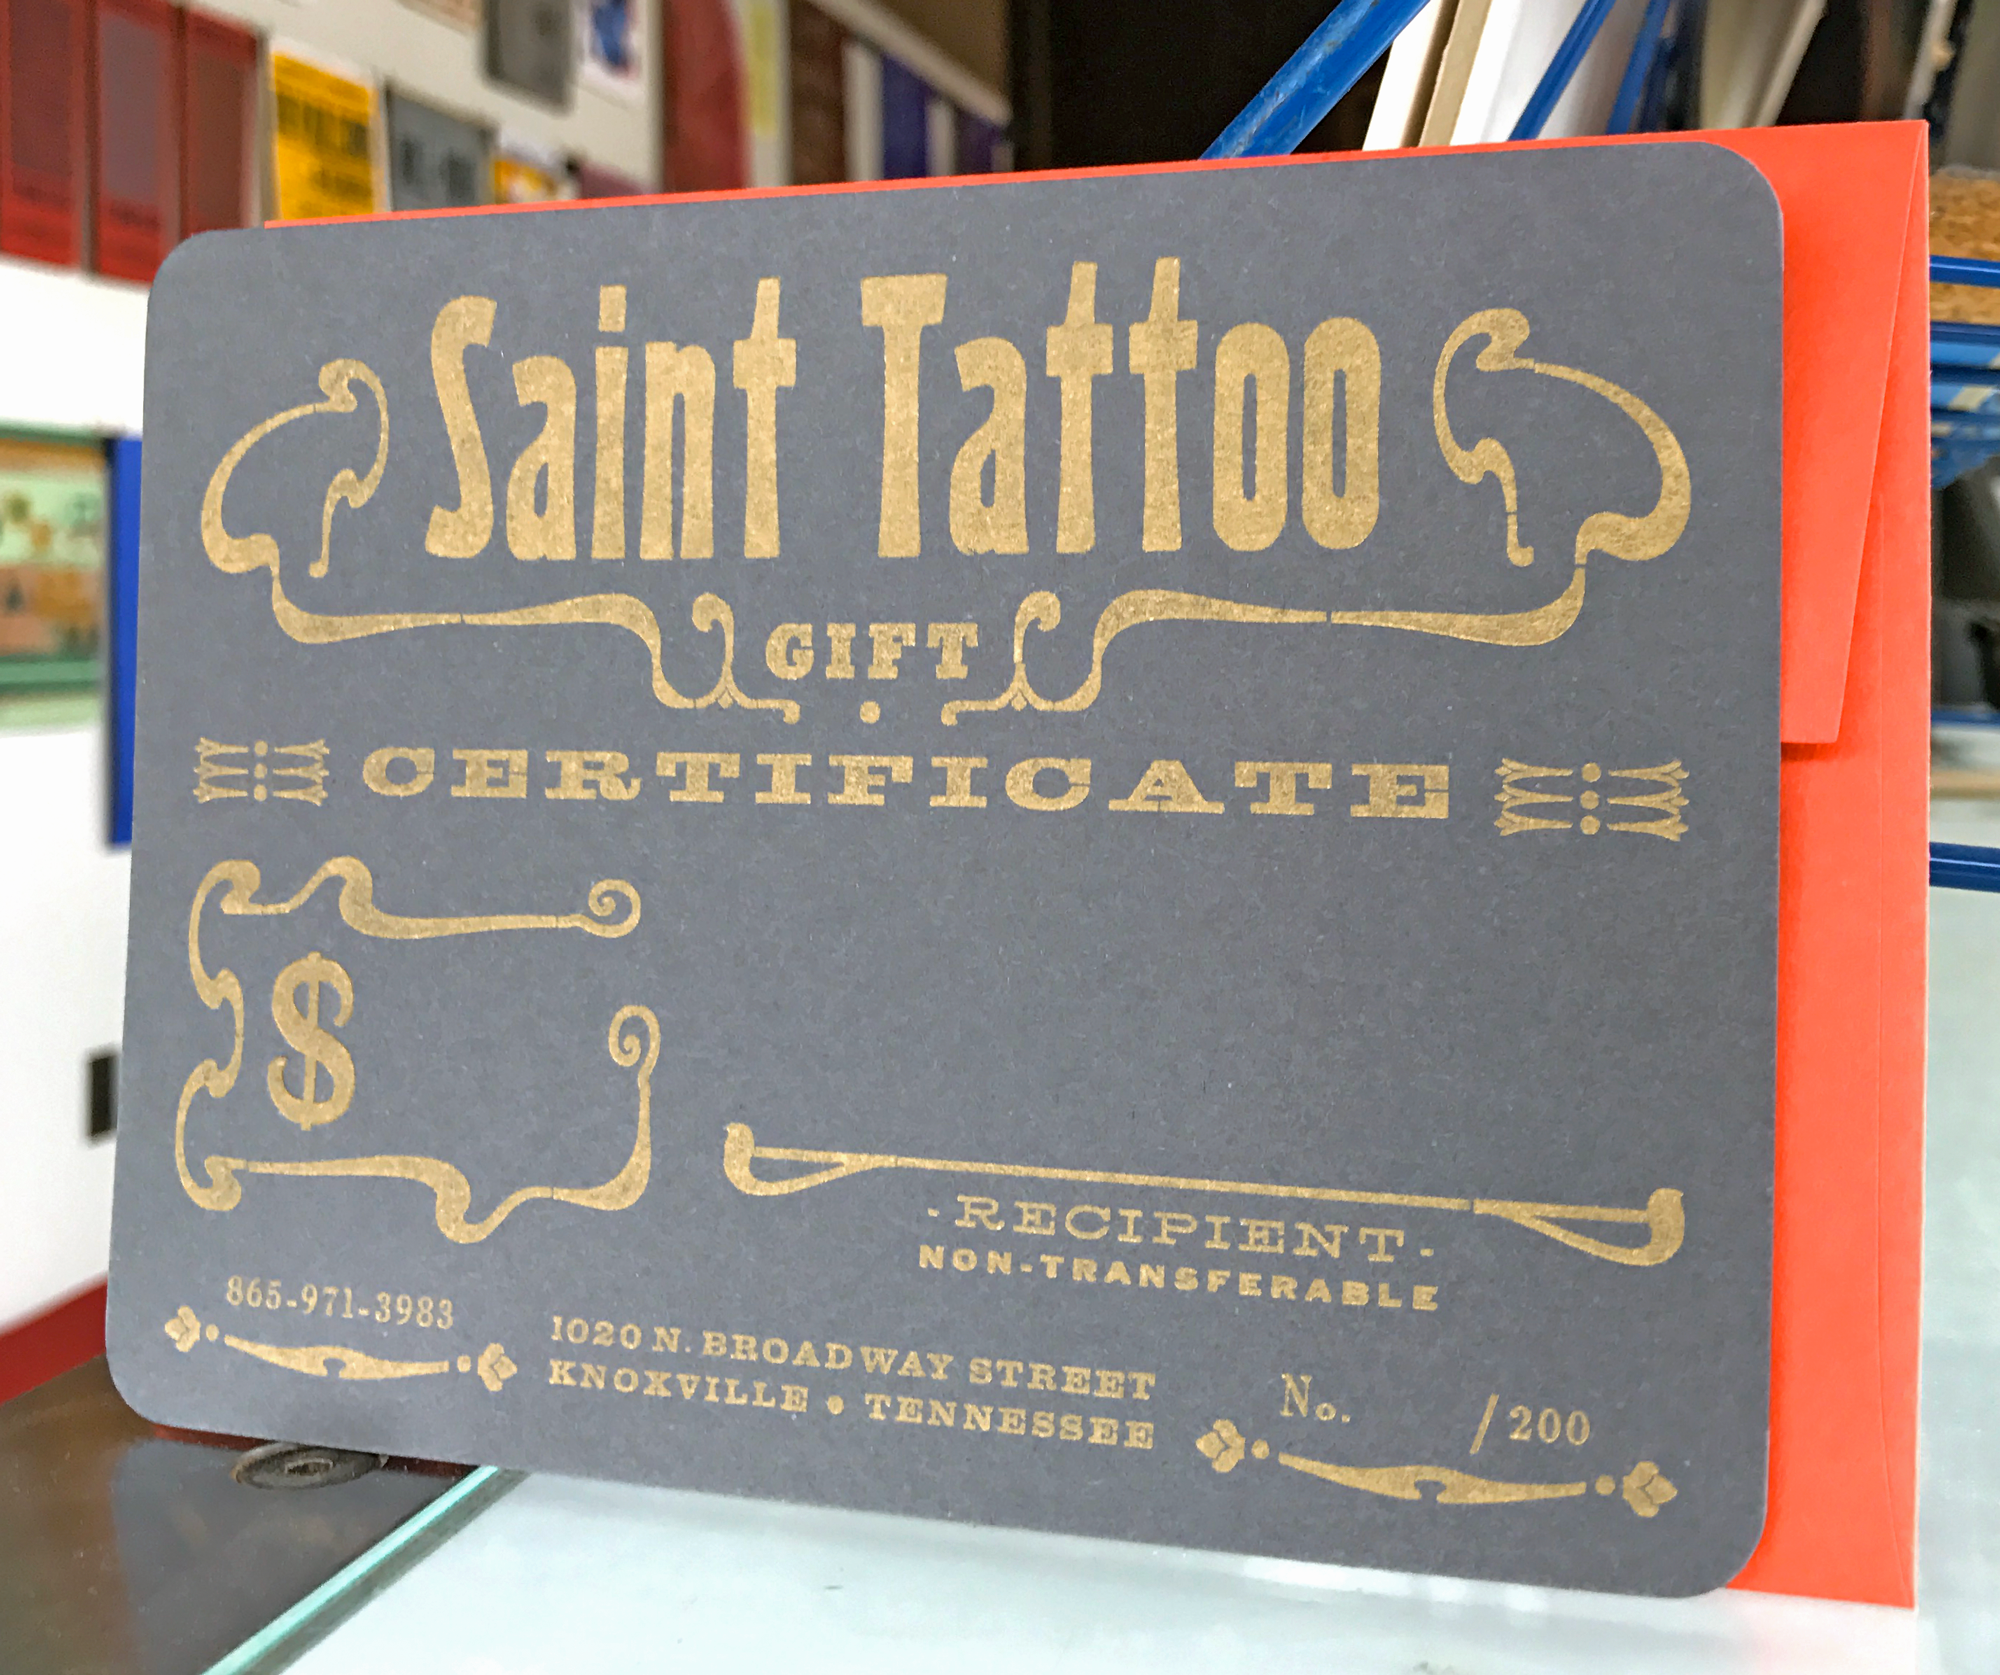 Handset Gift Certificates for Saint Tattoo - Knoxville TN